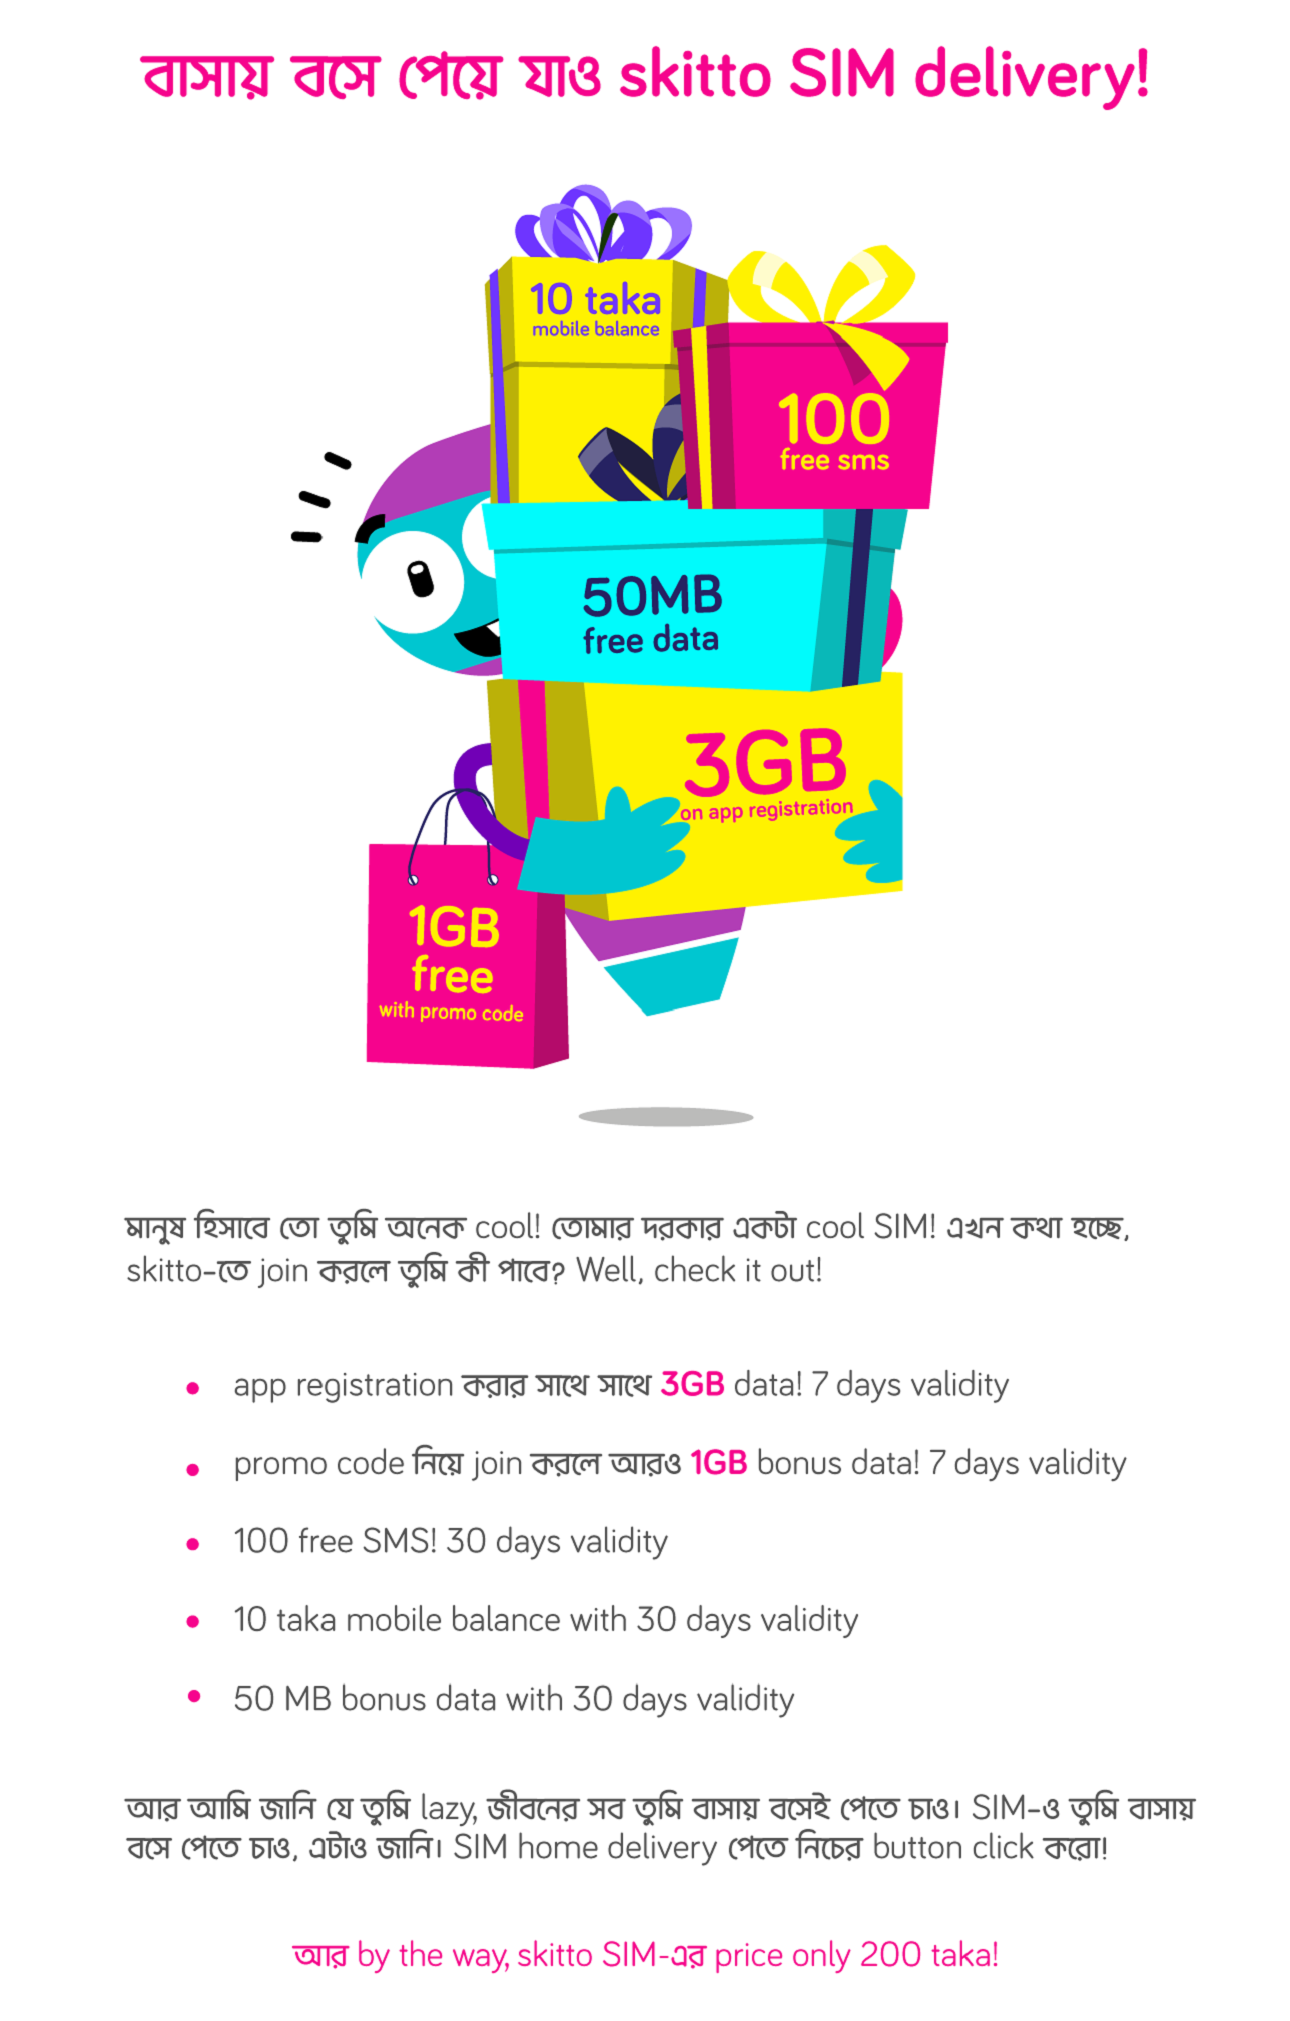 How To Buy Skitto SIM Online